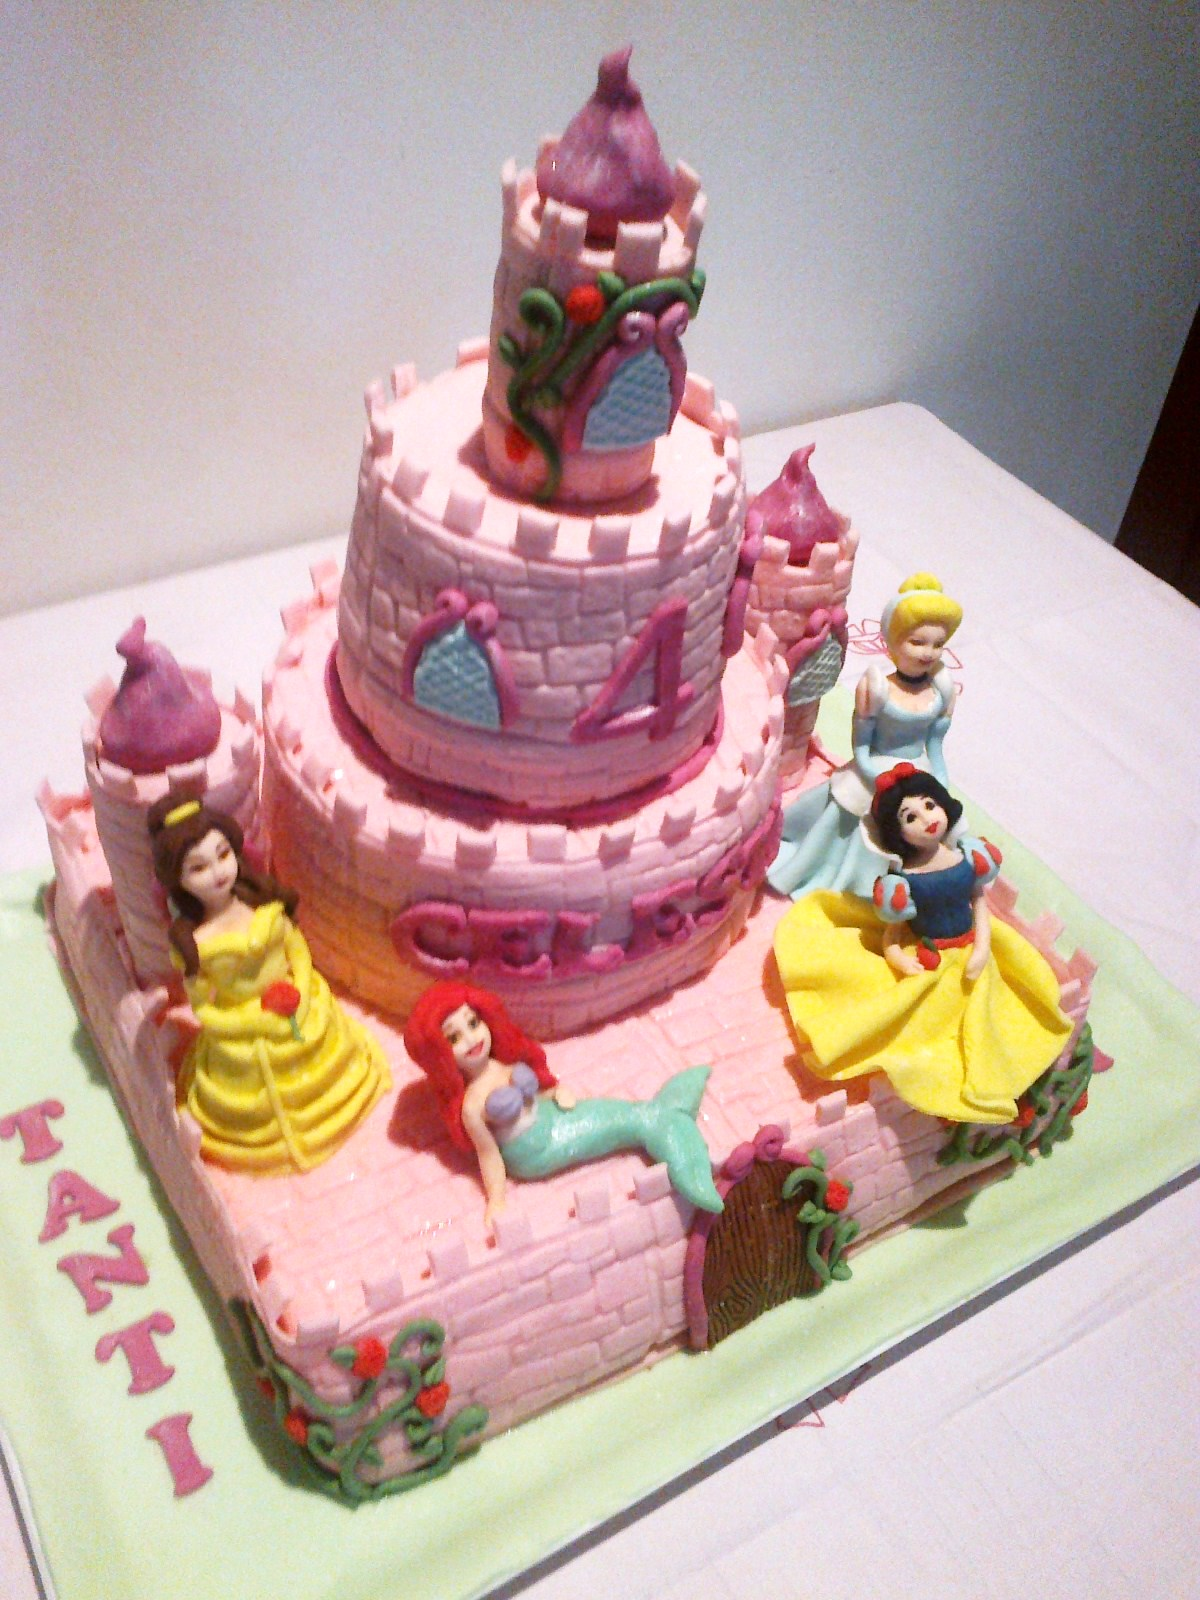 Le torte decorate torta castello principesse disney for Piani a forma di artigiano